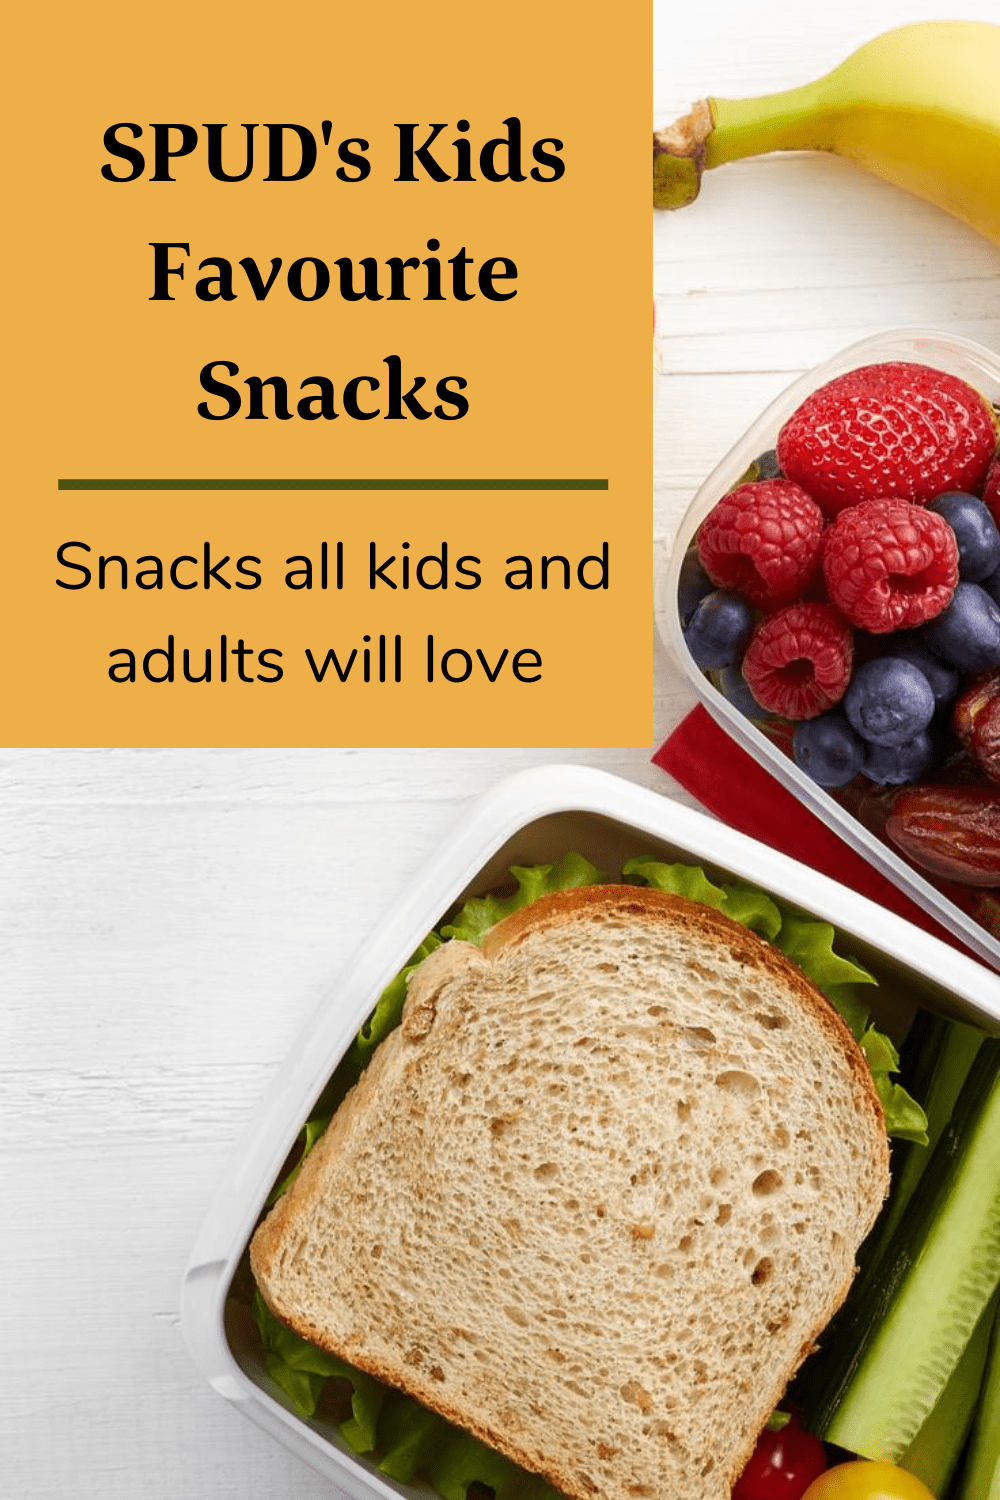 SPUD's Kids Favourite Snacks